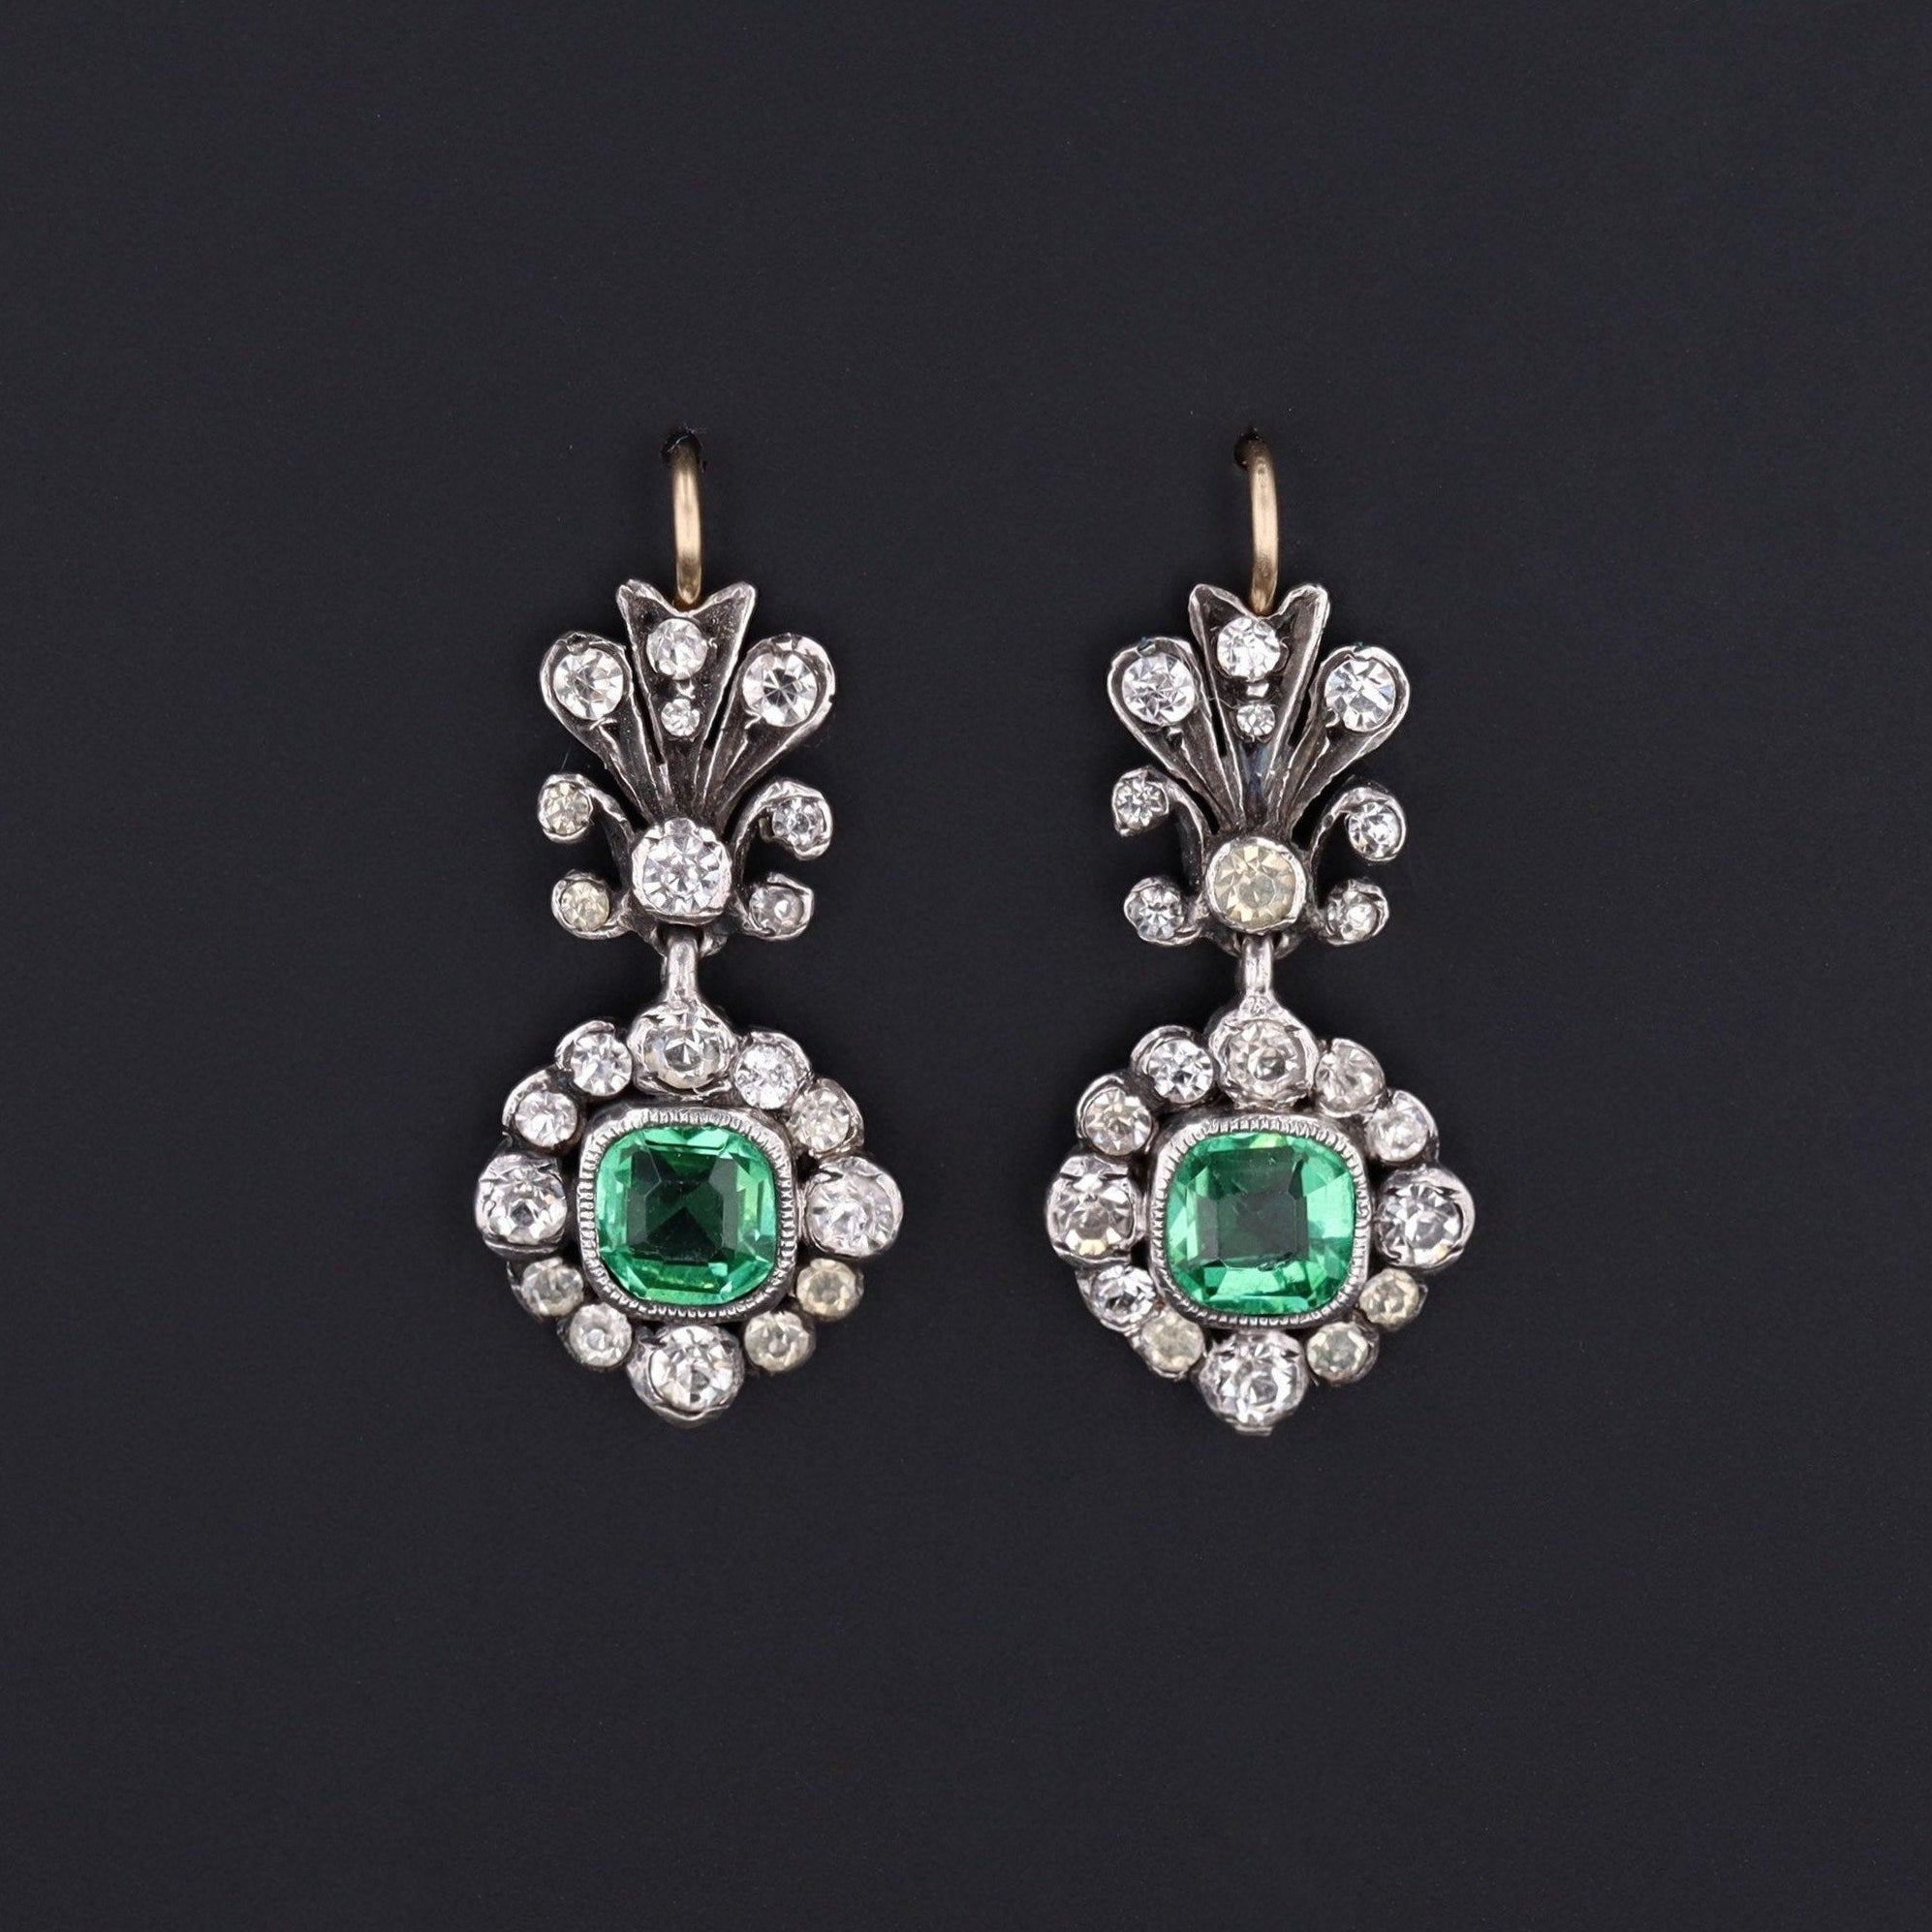 Antique Green and Clear Paste Earrings | 14k Gold & Silver Earrings | Bracelet Conversion Earrings | Antique Paste